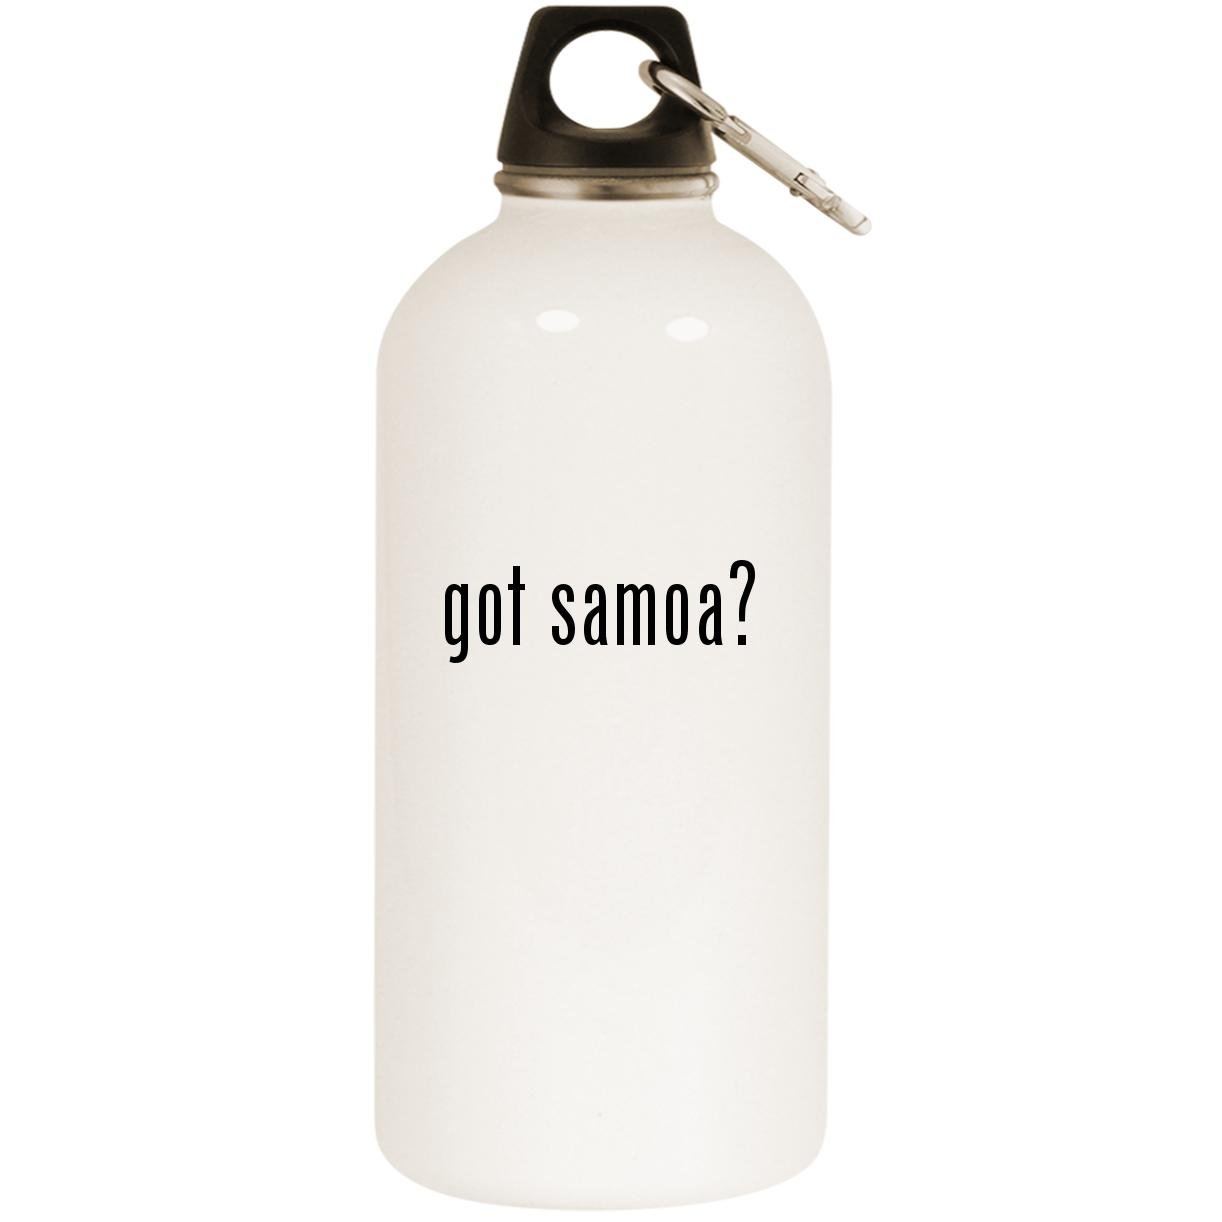 got samoa? - White 20oz Stainless Steel Water Bottle with Carabiner